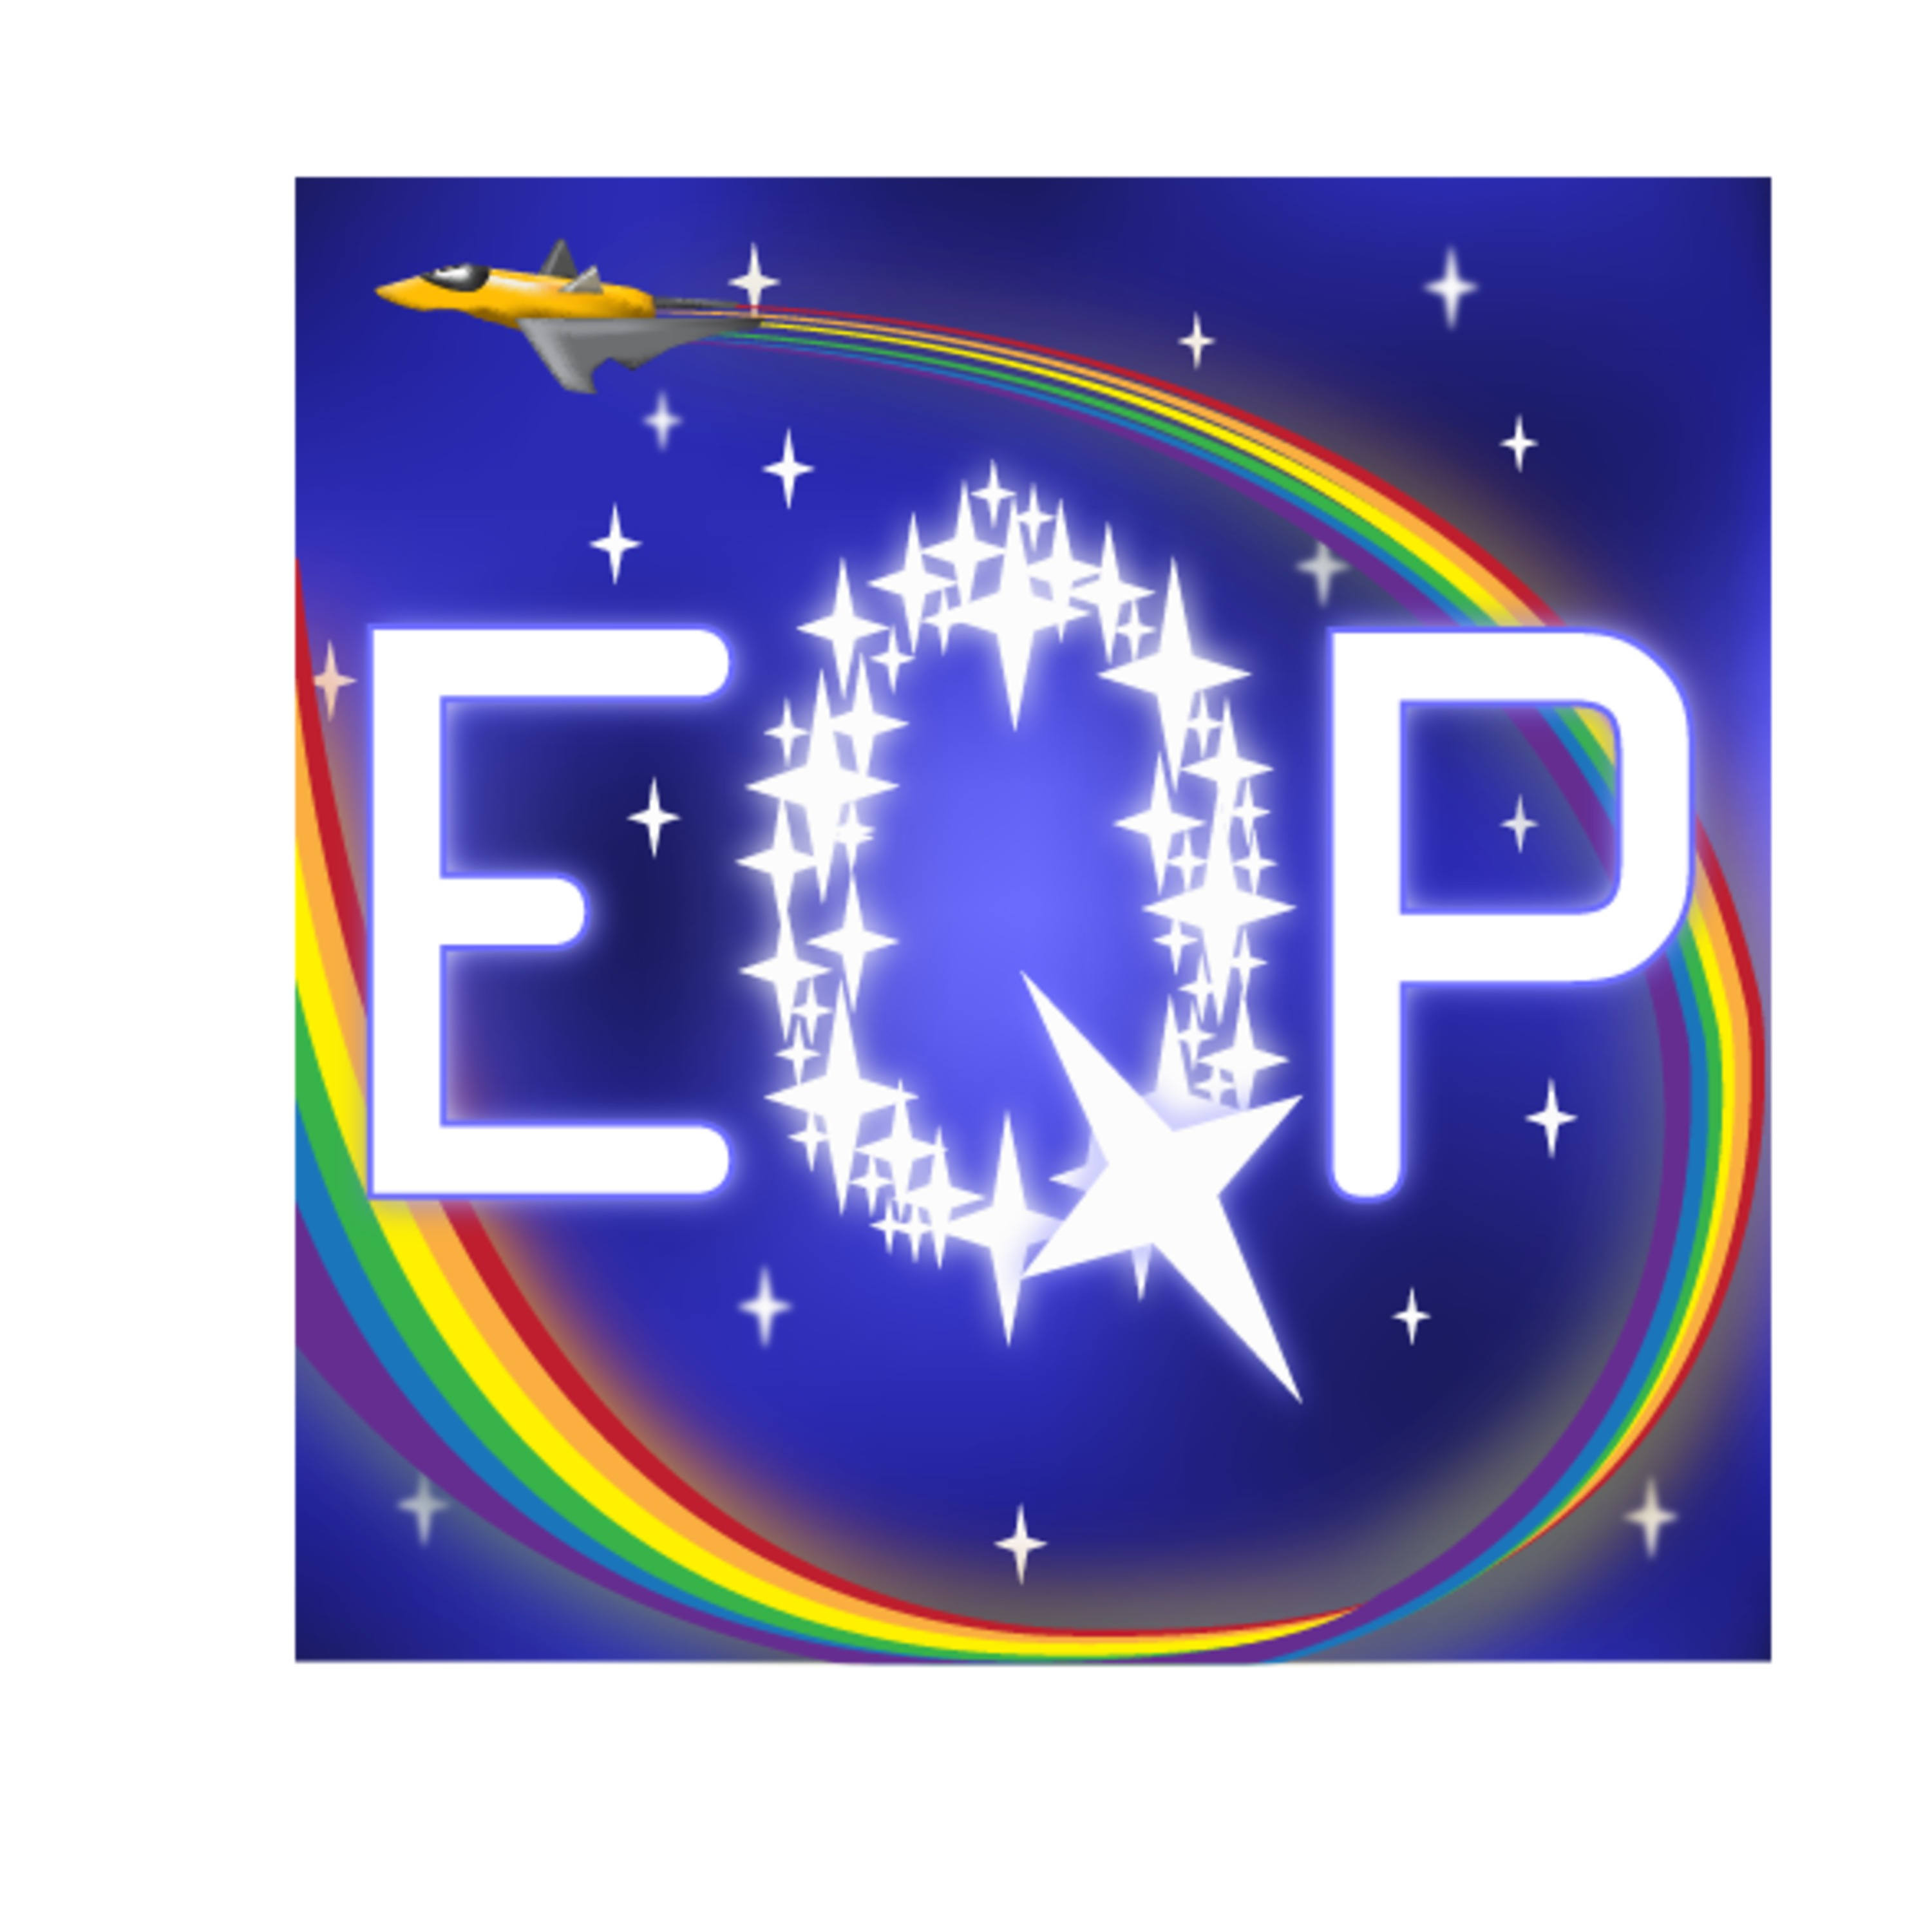 EQP SF S2 EP 0 Part 2 It Begins!